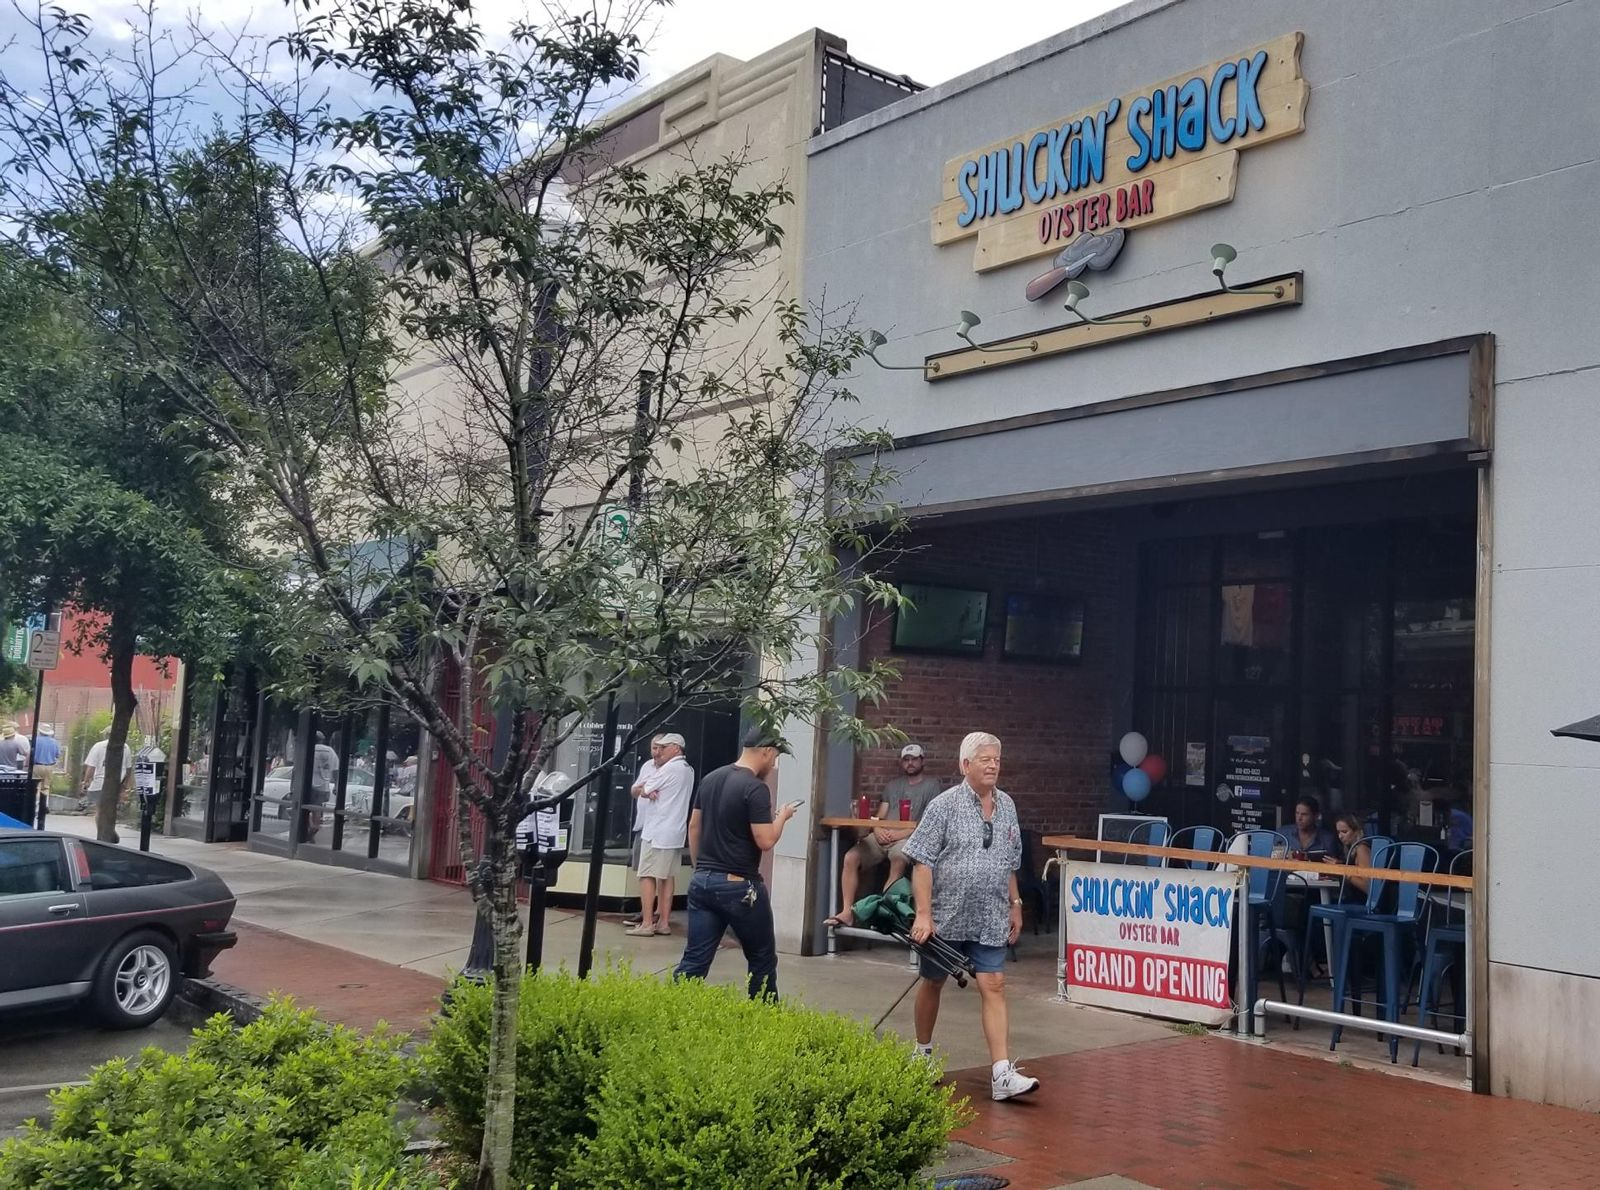 Shuckin' Shack Oyster Bar Franchise Moving to the Midwest